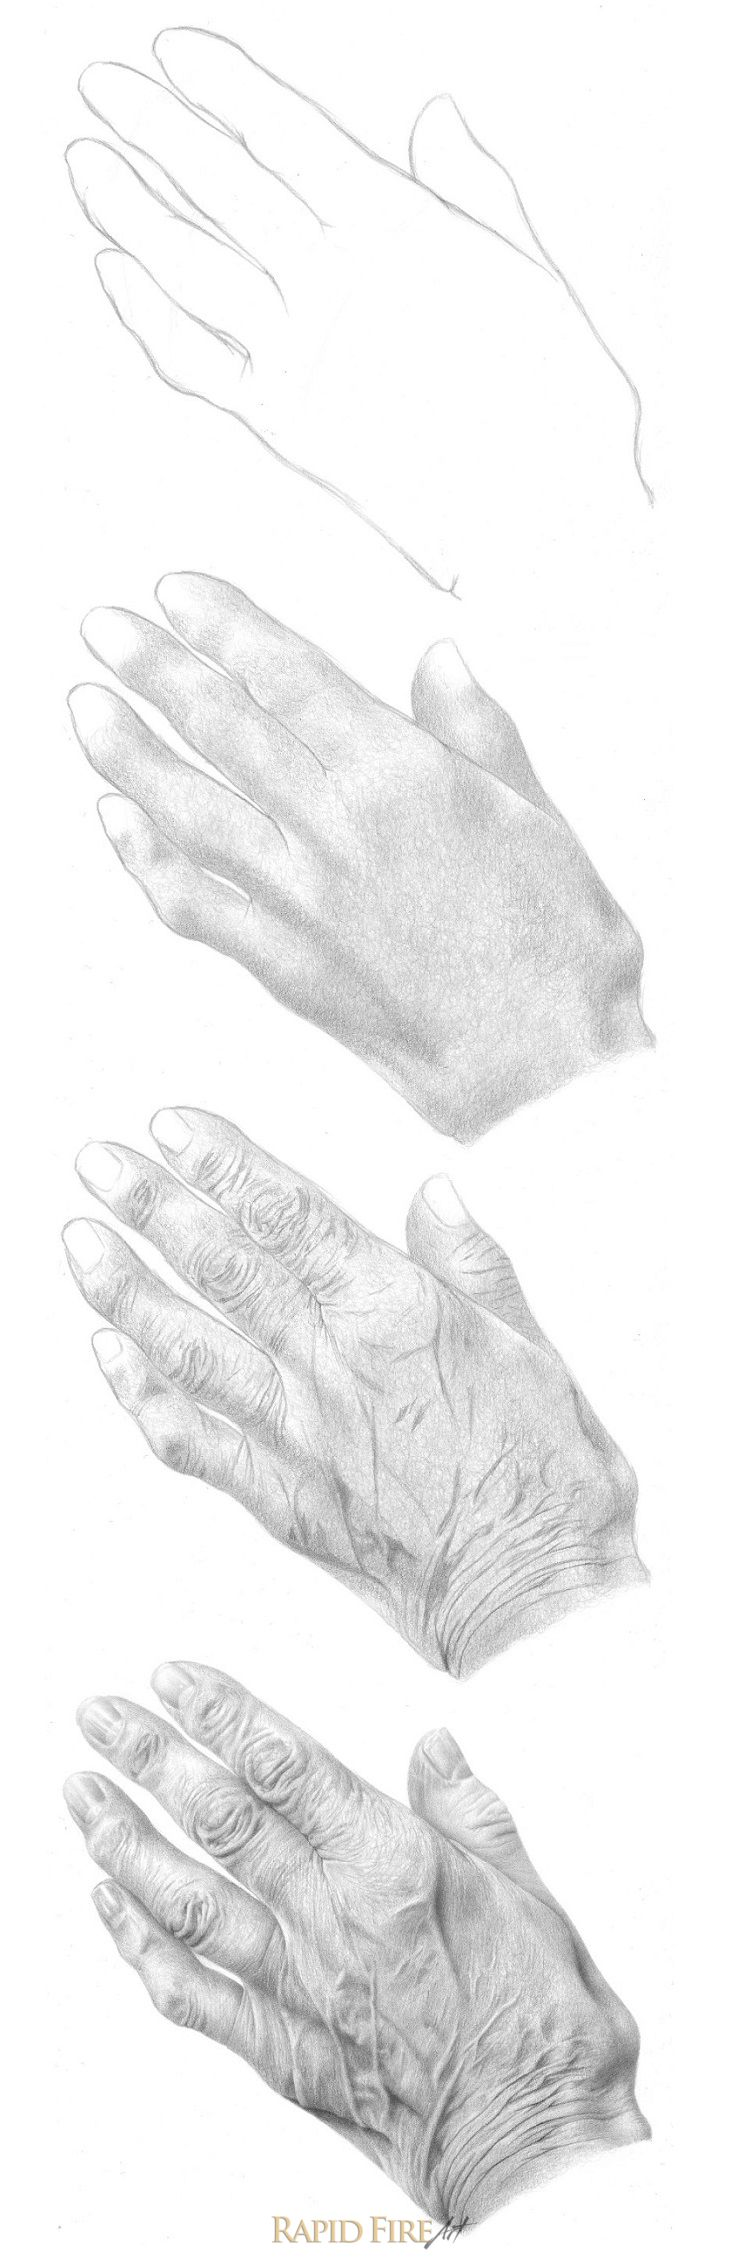 How To Draw Hands Part 2 Beyond Structure Art Models